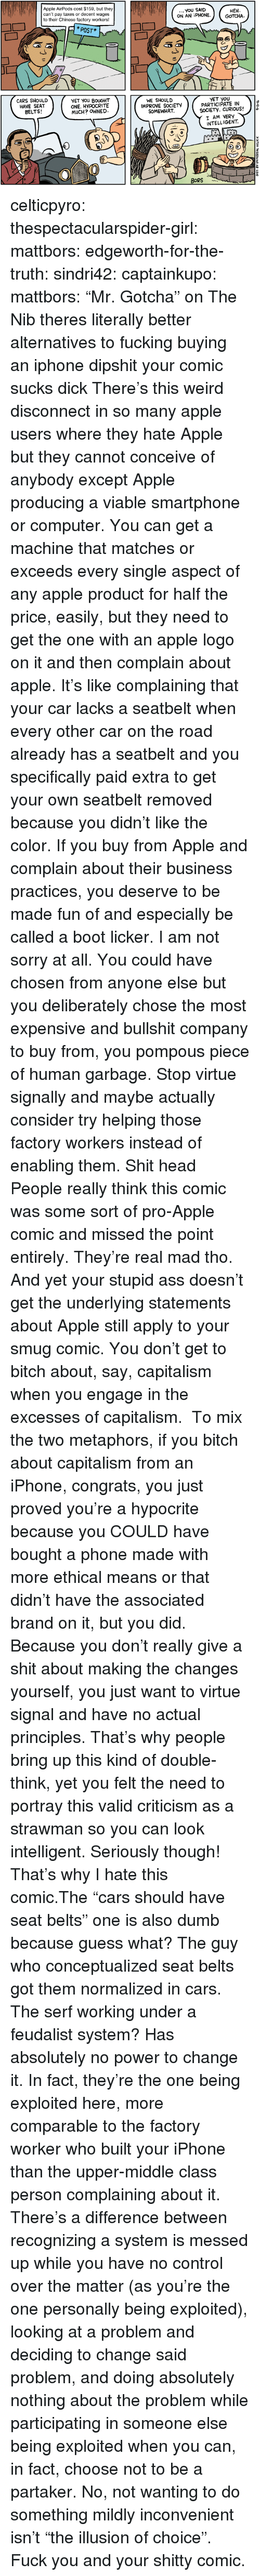 """Apple, Ass, and Bitch: Apple AirPods cost $159, but they  can't pay taxes or decent wages  to their Chinese factory workers!  you SAID  ON AN iPHONE.GOTCHA  HEH  *POST*  CARS SHOULD  HAVE SEAT  BELTS!  YET YOU BOUGHT  ONE. HyPOCRITE  MUCH? OWNED.  WE SHOULD  YET YOu  SOCIETY . CURIOUS!  I AM VERY  IMPROVE SOCIETYPARTICIPATE IN  SOMEWHAT.  INTELLIGENT  BORS celticpyro:  thespectacularspider-girl: mattbors:  edgeworth-for-the-truth:  sindri42:  captainkupo:  mattbors: """"Mr. Gotcha"""" on The Nib  theres literally better alternatives to fucking buying an iphone dipshit your comic sucks dick  There's this weird disconnect in so many apple users where they hate Apple but they cannot conceive of anybody except Apple producing a viable smartphone or computer. You can get a machine that matches or exceeds every single aspect of any apple product for half the price, easily, but they needto get the one with an apple logo on it and then complain about apple. It's like complaining that your car lacks a seatbelt when every other car on the road already has a seatbelt and you specifically paid extra to get your own seatbelt removed because you didn't like the color.   If you buy from Apple and complain about their business practices, you deserve to be made fun of and especially be called a boot licker. I am not sorry at all. You could have chosen from anyone else but you deliberately chose the most expensive and bullshit company to buy from, you pompous piece of human garbage. Stop virtue signally and maybe actually consider try helping those factory workers instead of enabling them. Shit head  People really think this comic was some sort of pro-Apple comic and missed the point entirely. They're real mad tho.  And yet your stupid ass doesn't get the underlying statements about Apple still apply to your smug comic. You don't get to bitch about, say, capitalism when you engage in the excesses of capitalism. To mix the two metaphors, if you bitch about capitalism from an iPhone, congrat"""